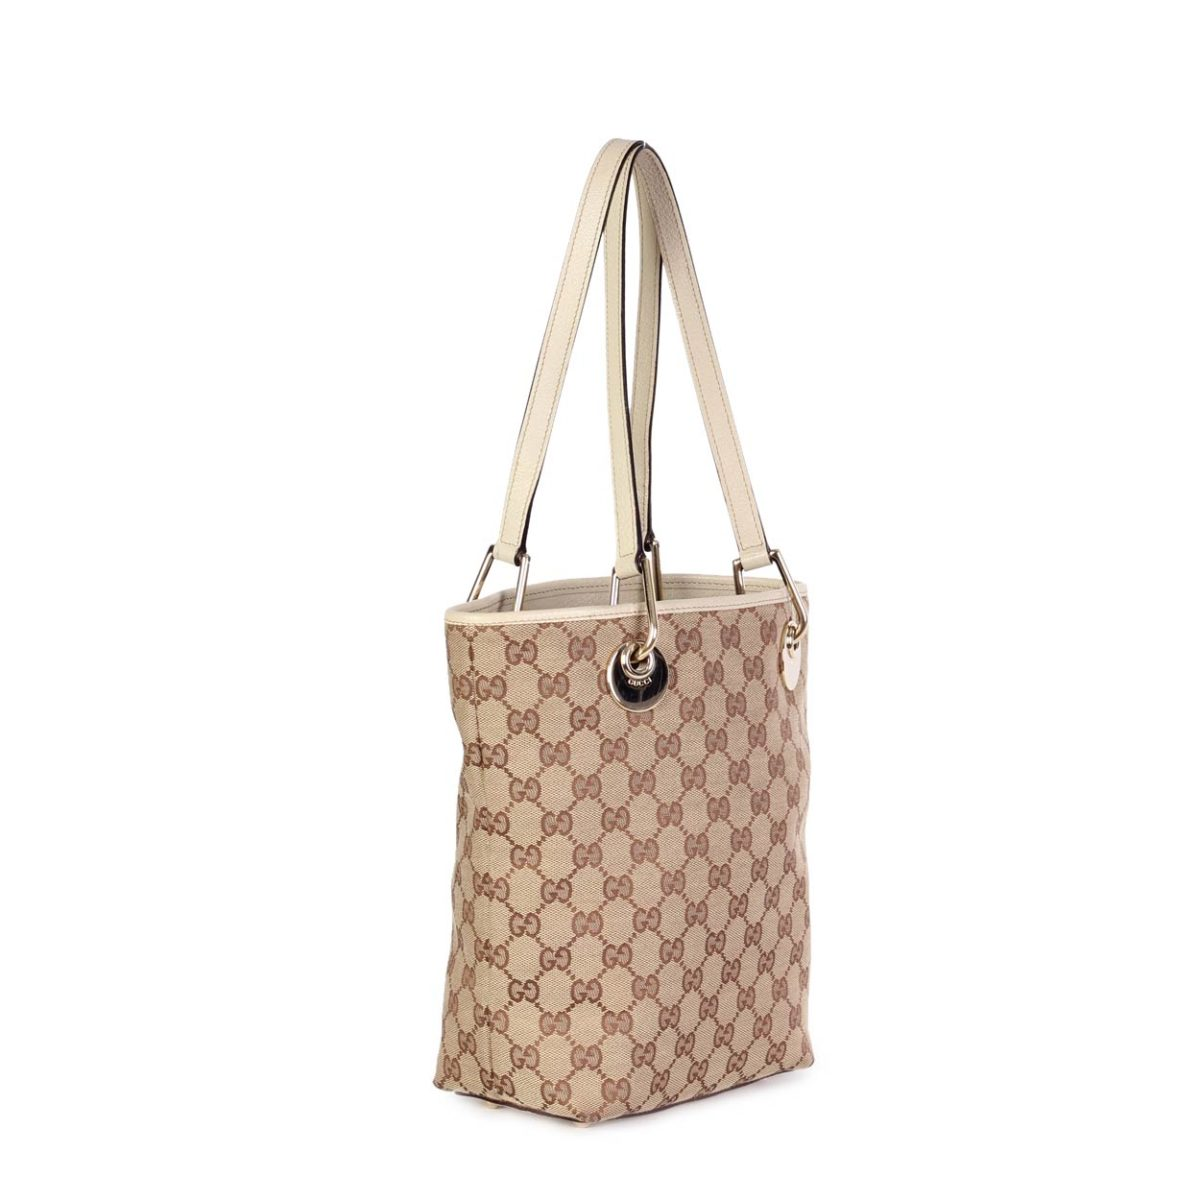 ccee3633029d GUCCI Monogram Eclipse Bucket Tote Small | Luxity